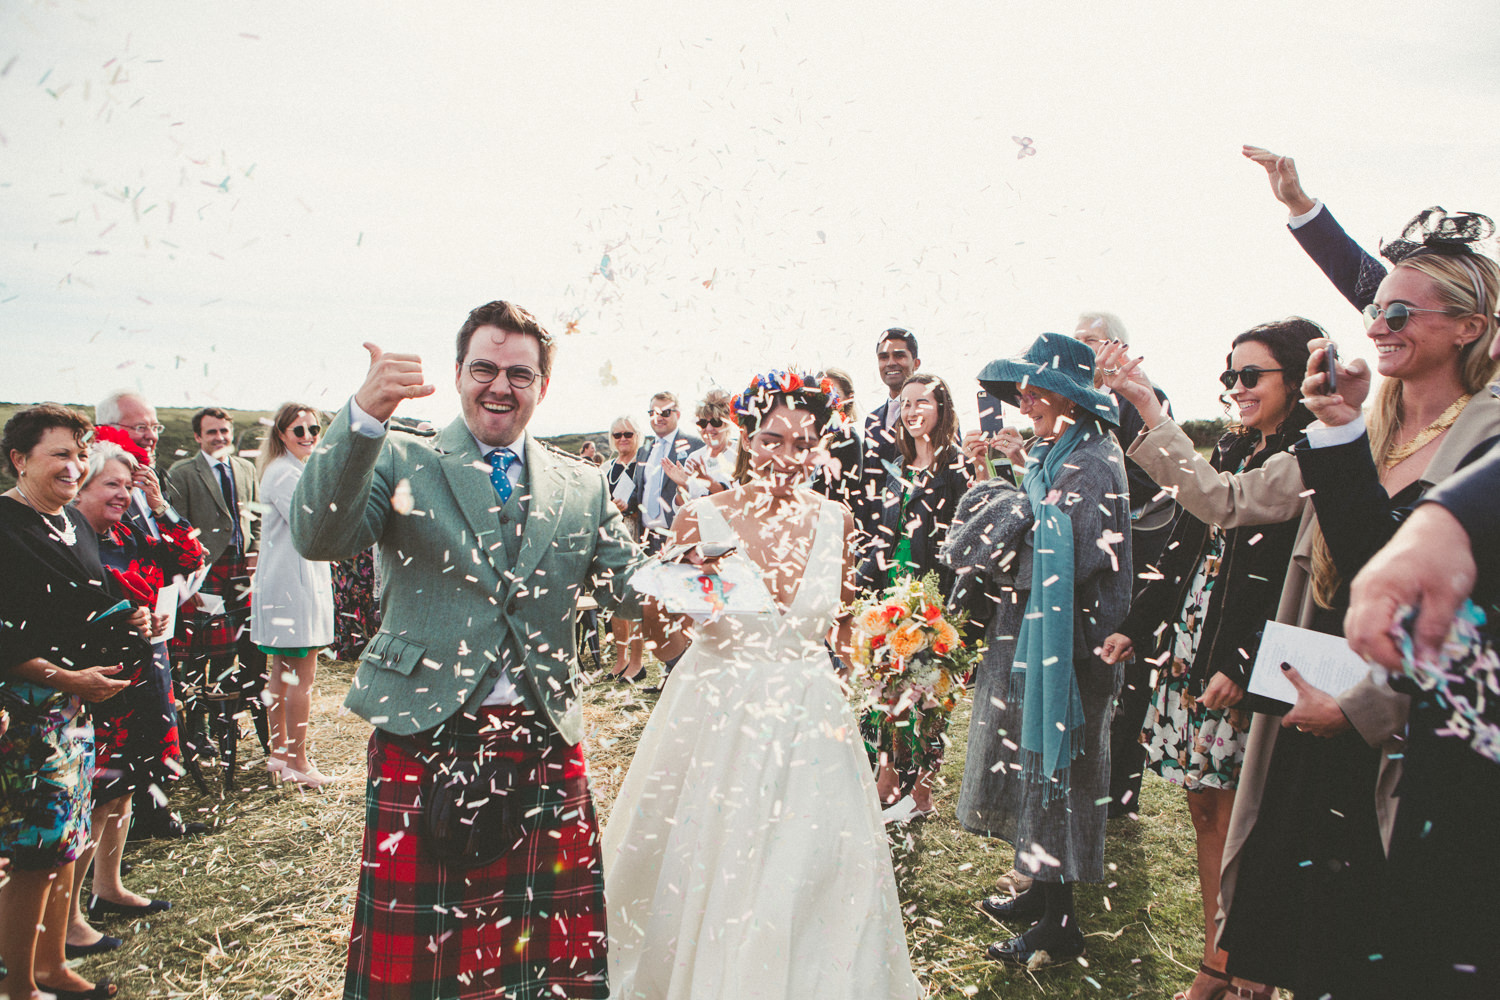 East Soar Farm Wedding Photographer, Devon wedding photographer, East Soar Farm wedding, Devon wedding, Devon wedding photography, coastal wedding, beach wedding, seaside wedding, farm wedding, country wedding, outdoor wedding ceremony, barn wedding, Mexican wedding, Mexican Day of the Dead wedding, Mexican Day of the Dead, colourful flowers, September wedding, autumn wedding, haybales, wedding kilt, alternative bride, alternative wedding, festival wedding